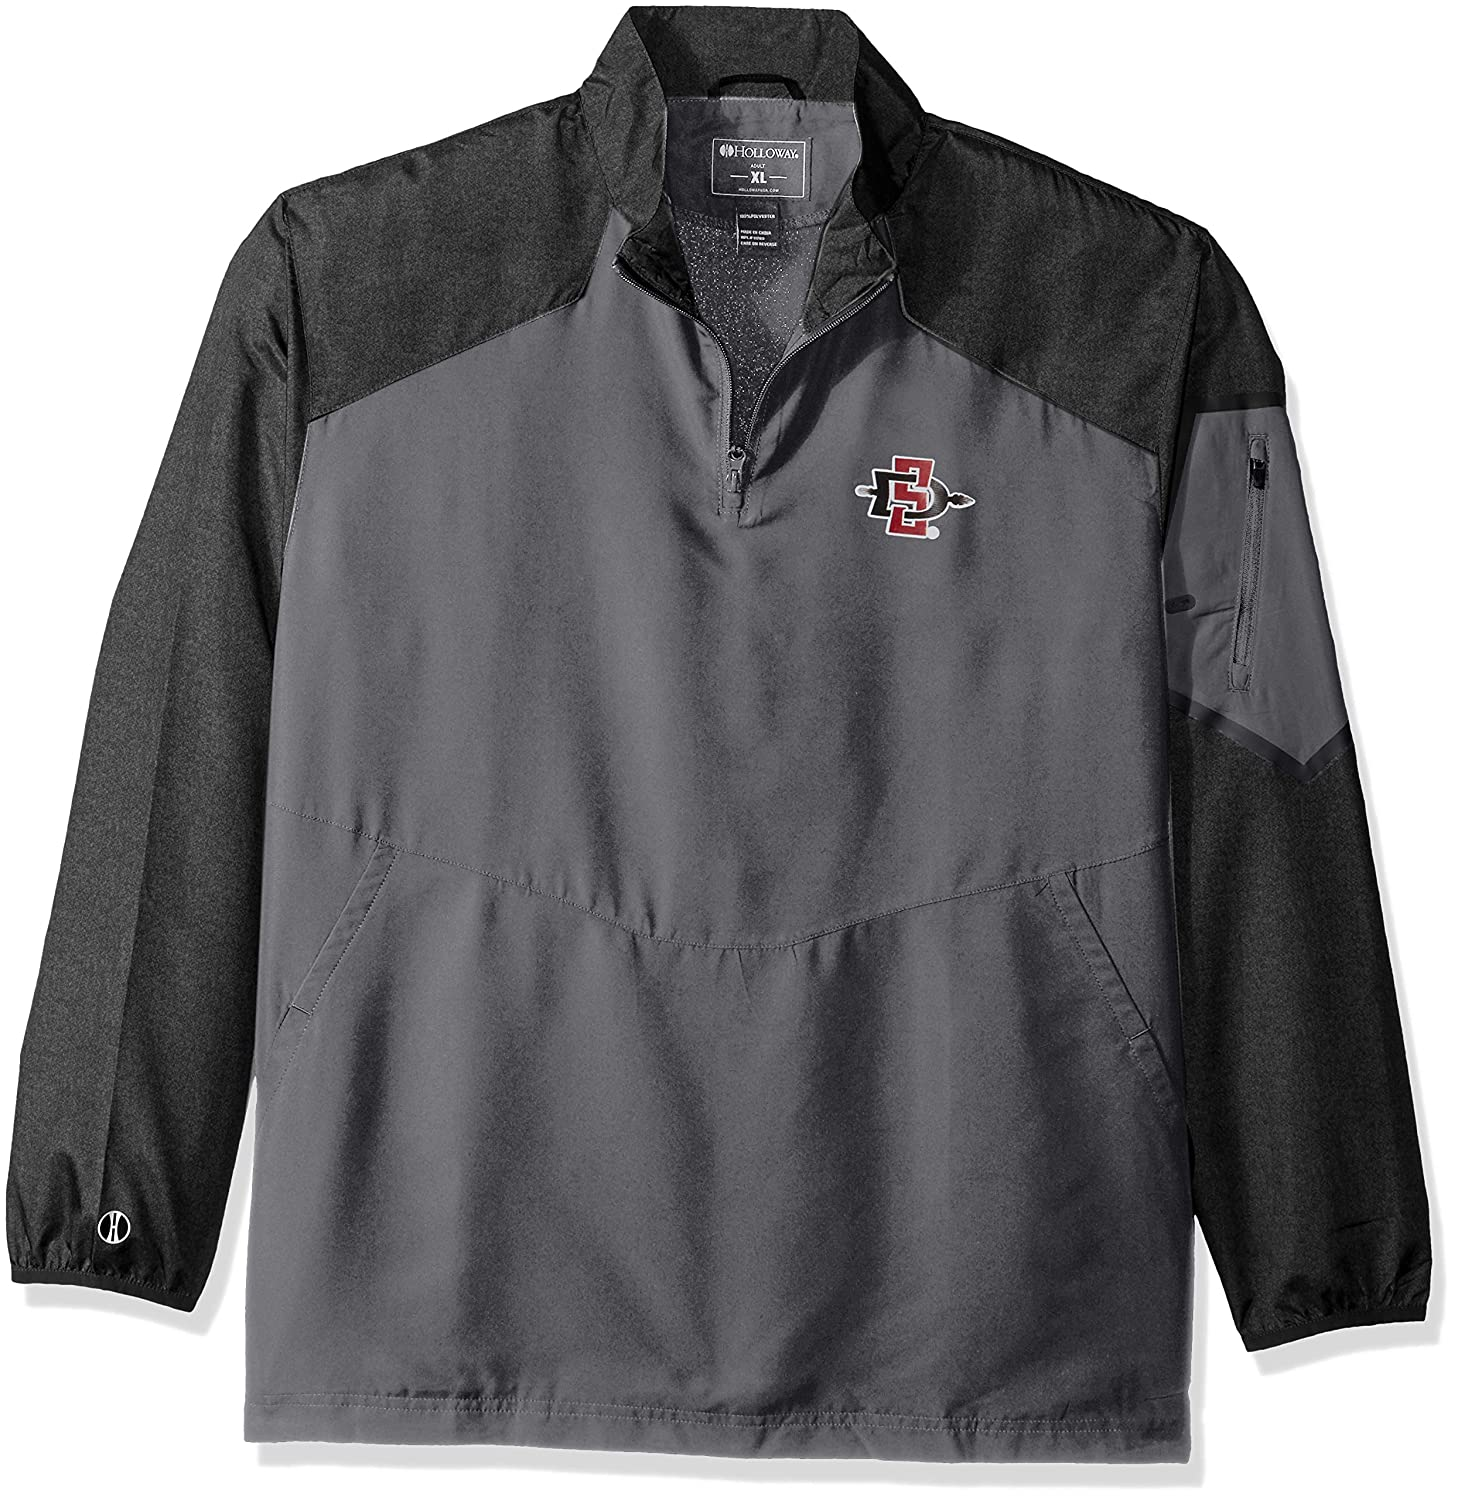 Ouray Sportswear NCAA San Diego State Aztecs Mens Raider Pullover Jacket Carbon Print//Graphite Small